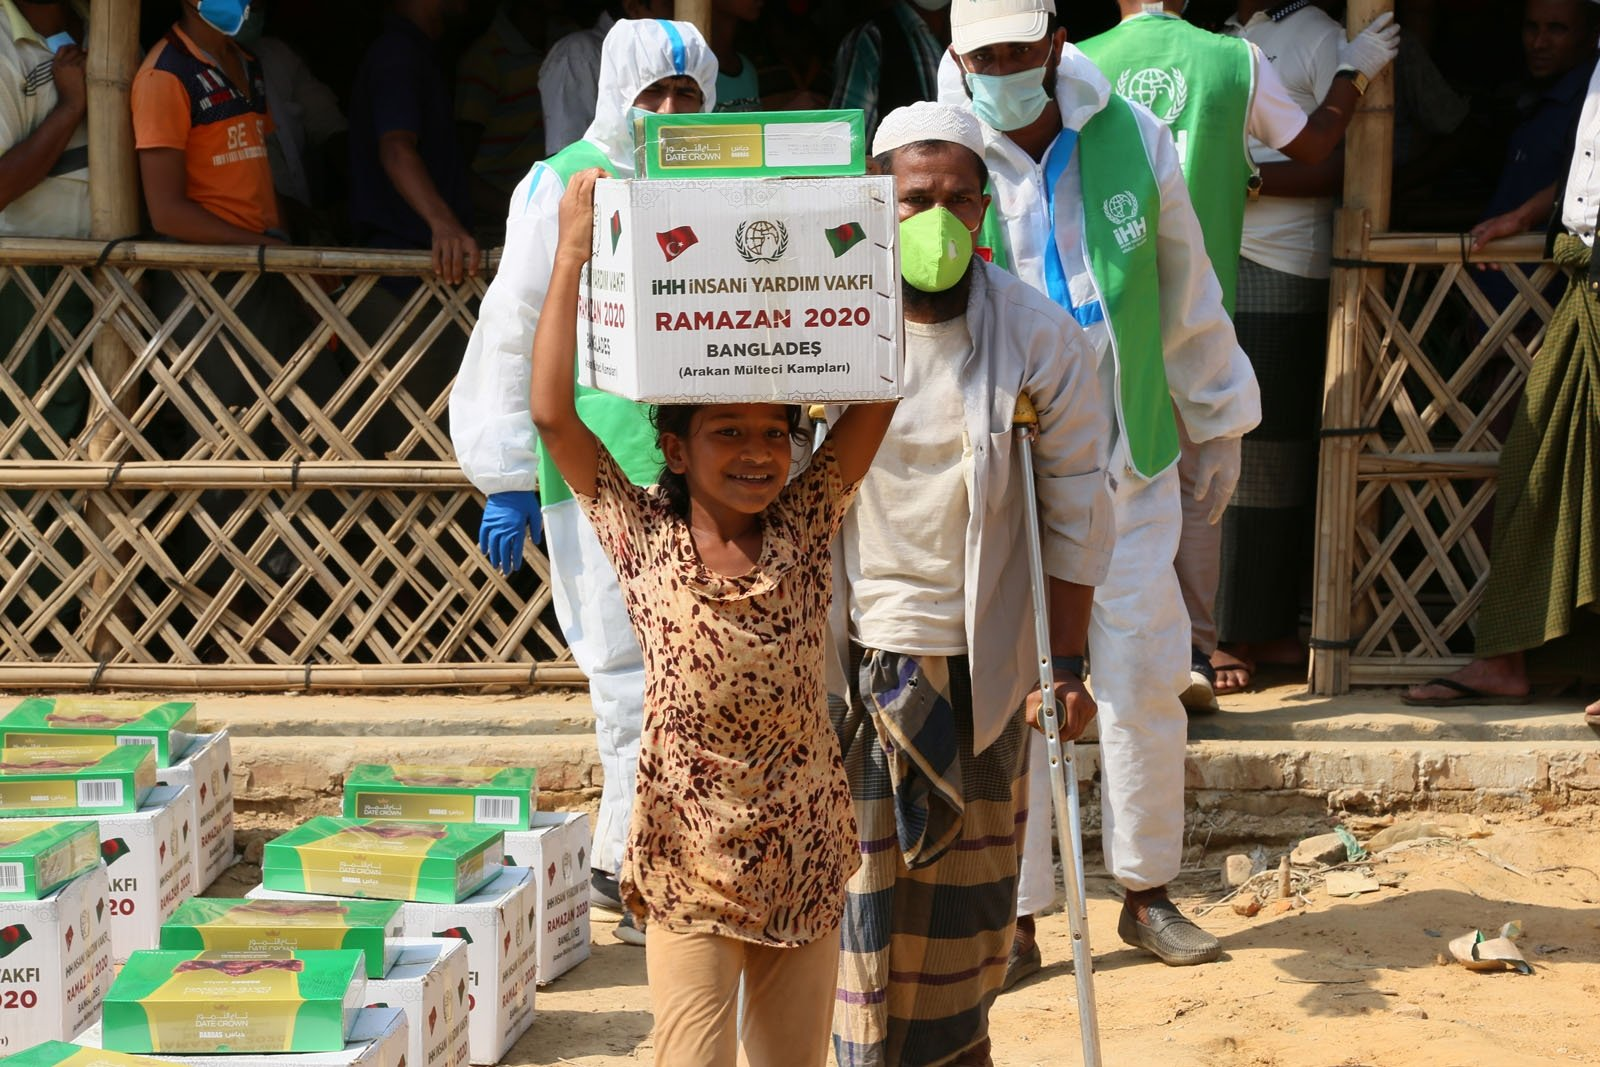 A girl carries an aid package donated by the Humanitarian Aid Foundation (IHH) at a refugee camp in Cox's Bazaar, Bangladesh, May 2, 2020. (COURTESY OF IHH)